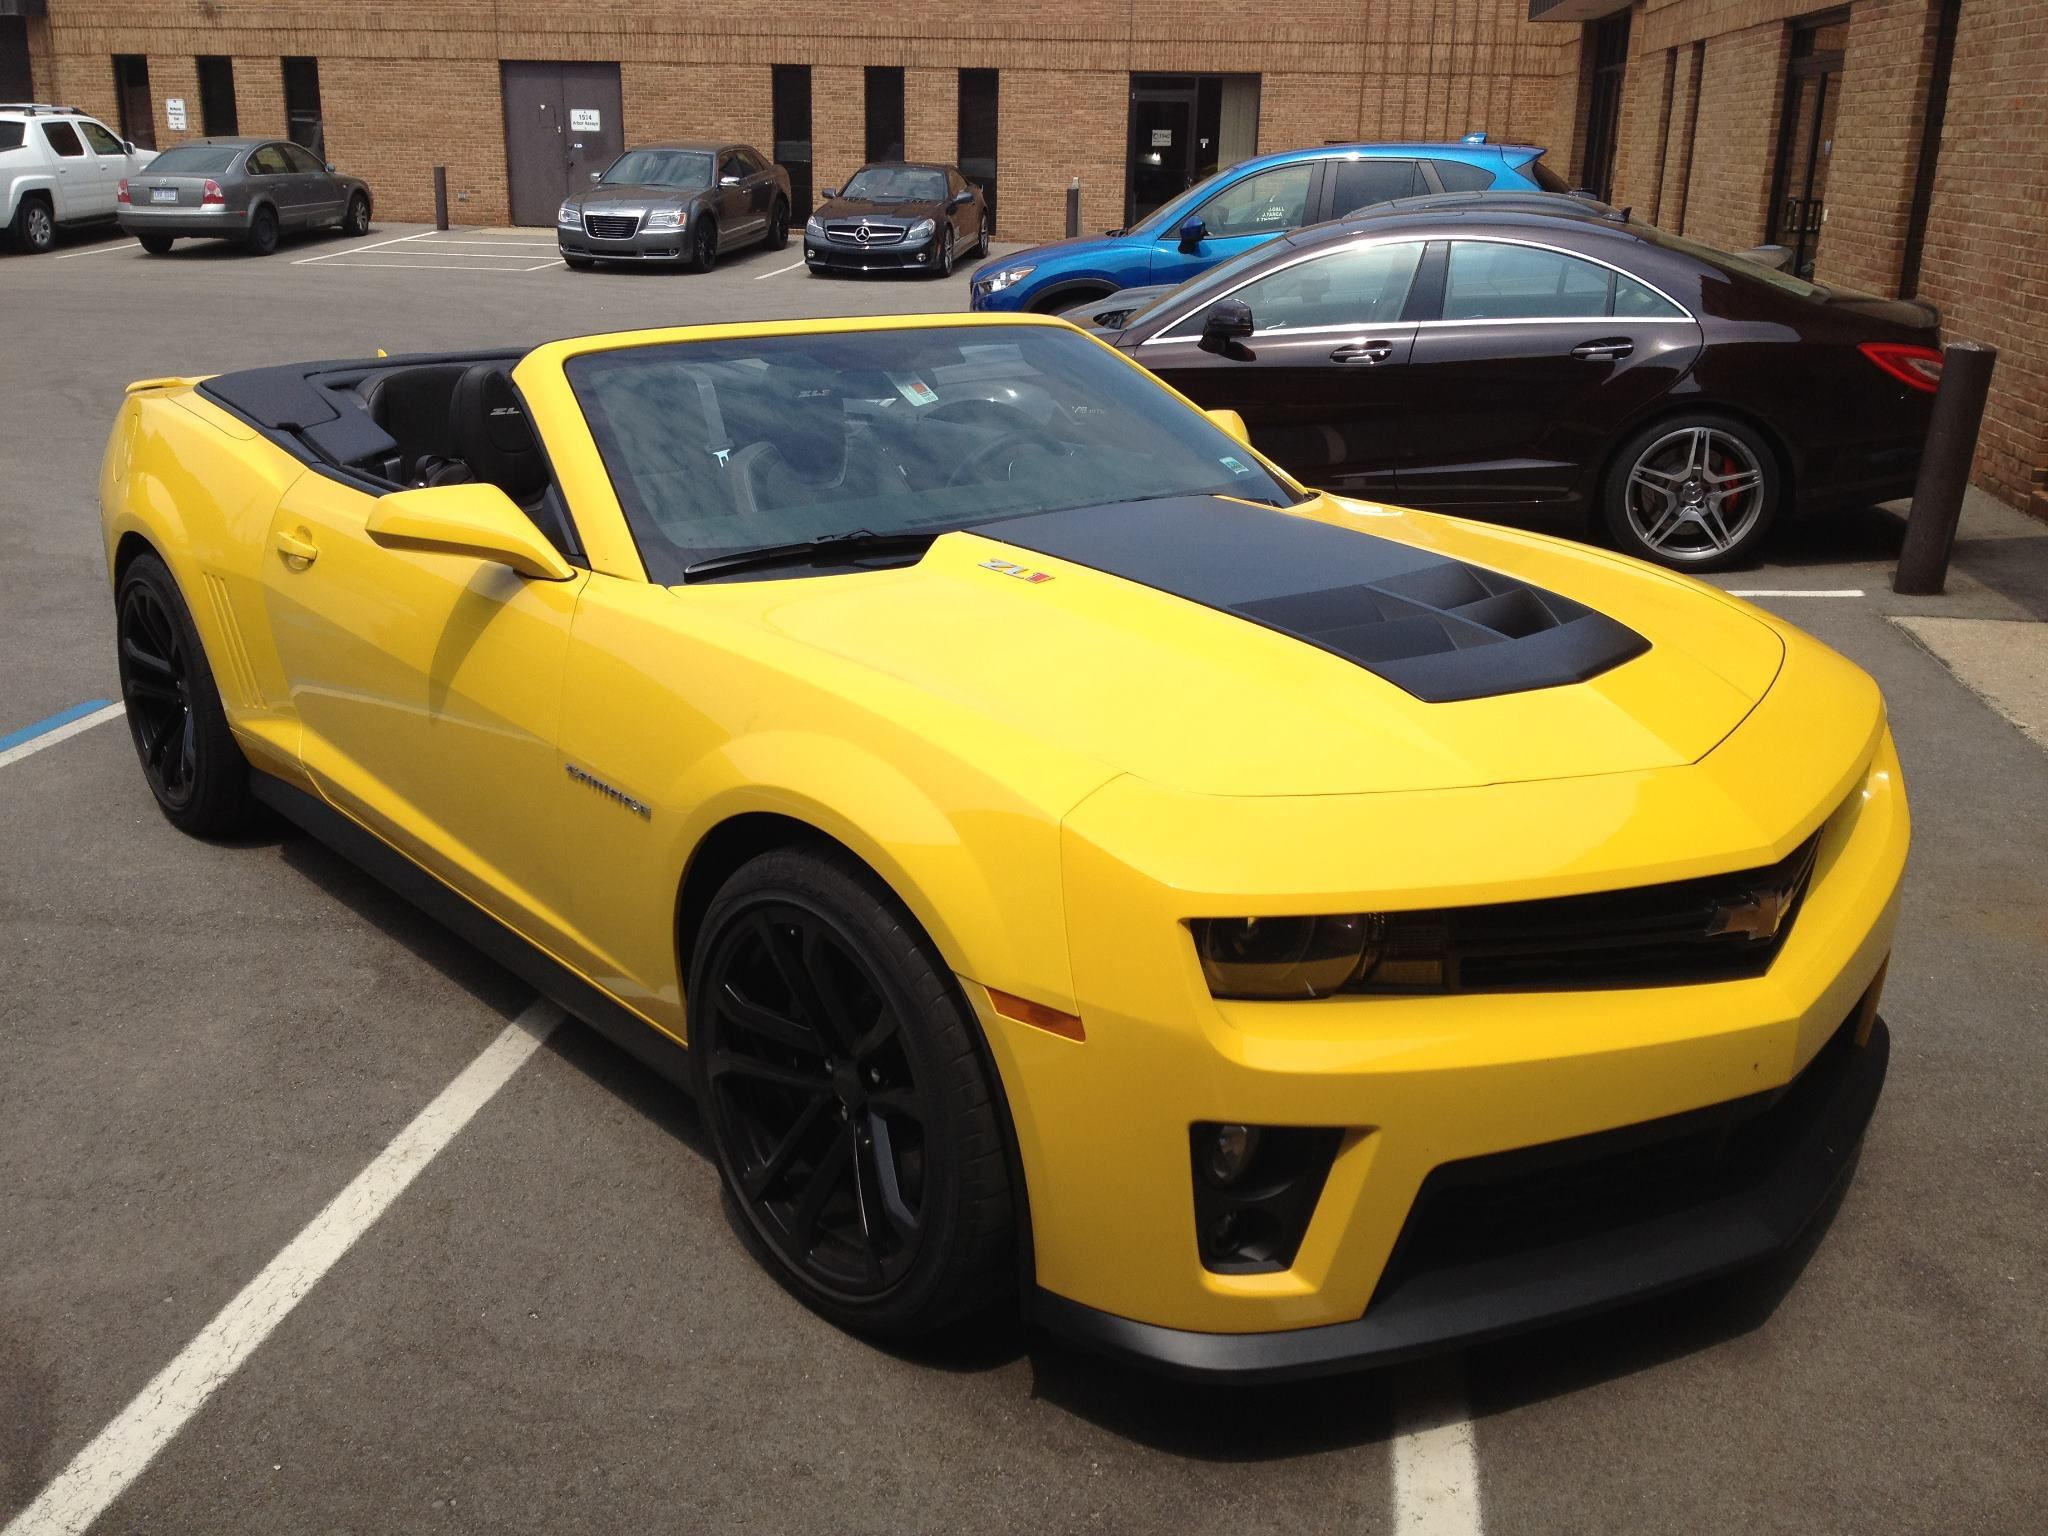 chevrolet camaro 2013 pictures to pin on pinterest